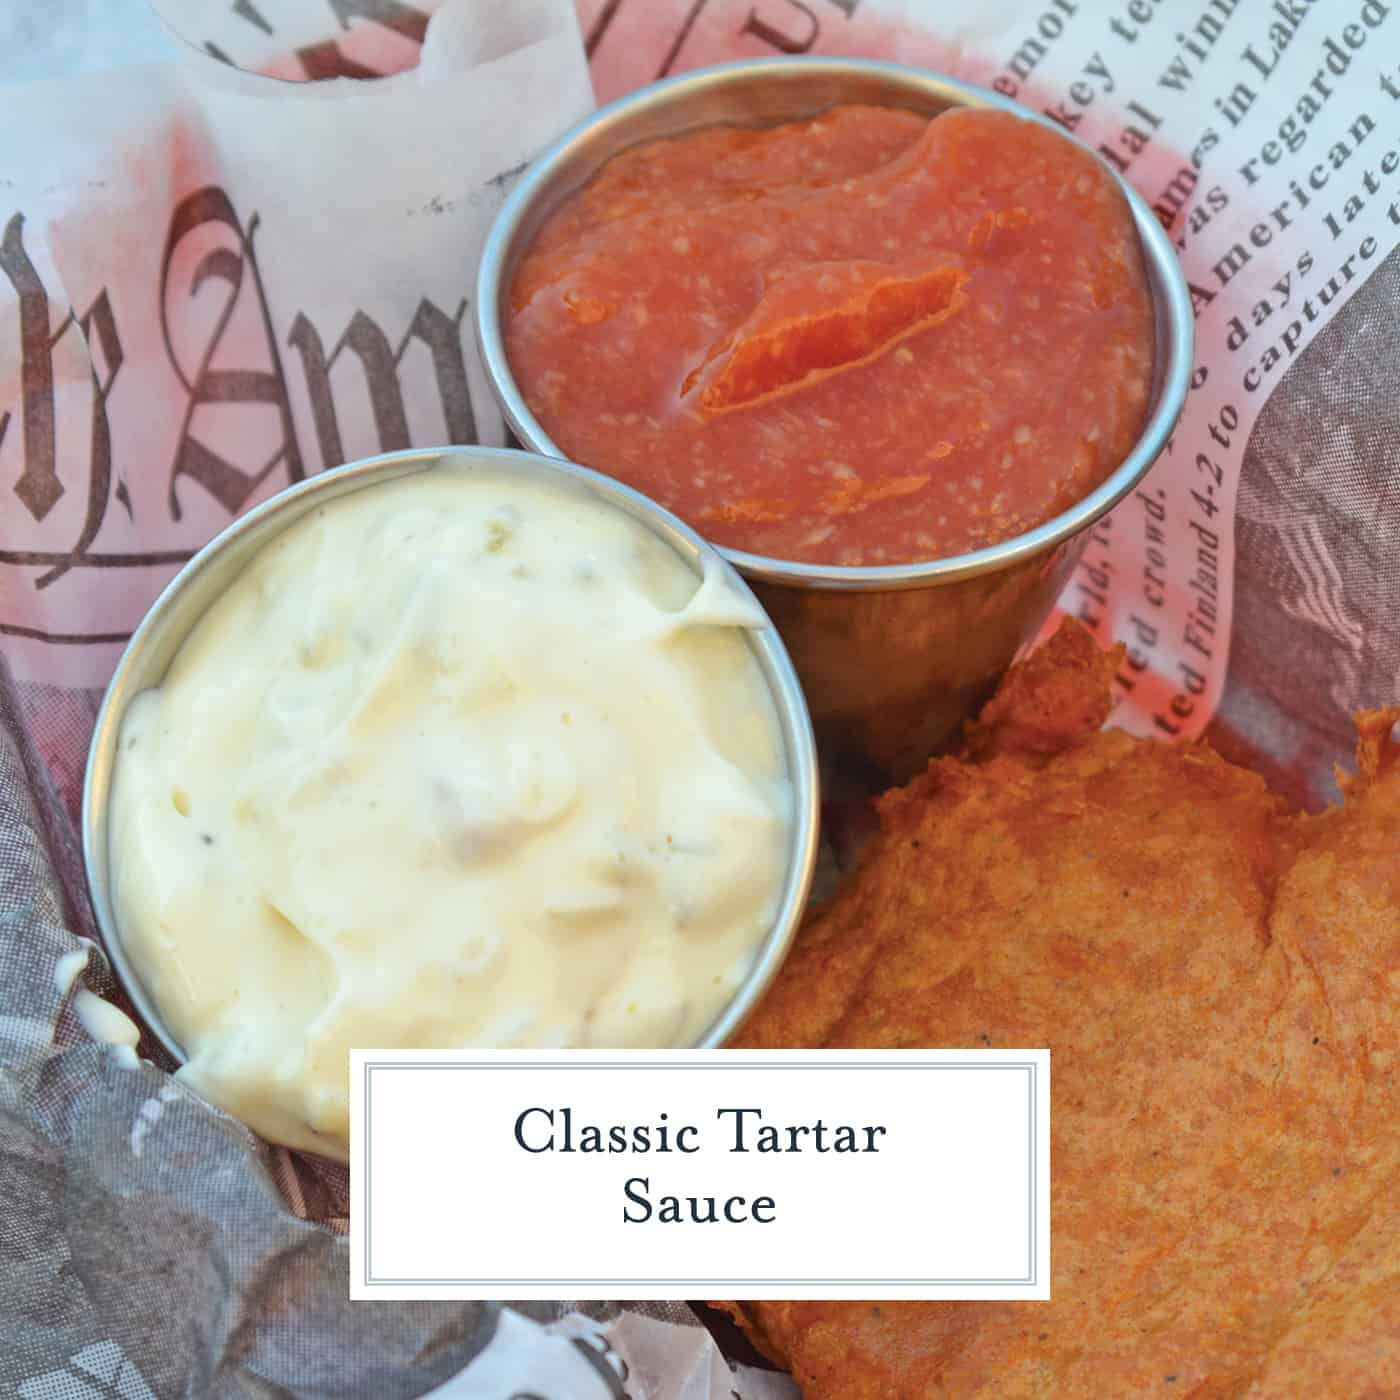 Main Ingredient Recipes: With Just 6 Main Ingredients, This Homemade Tartar Sauce